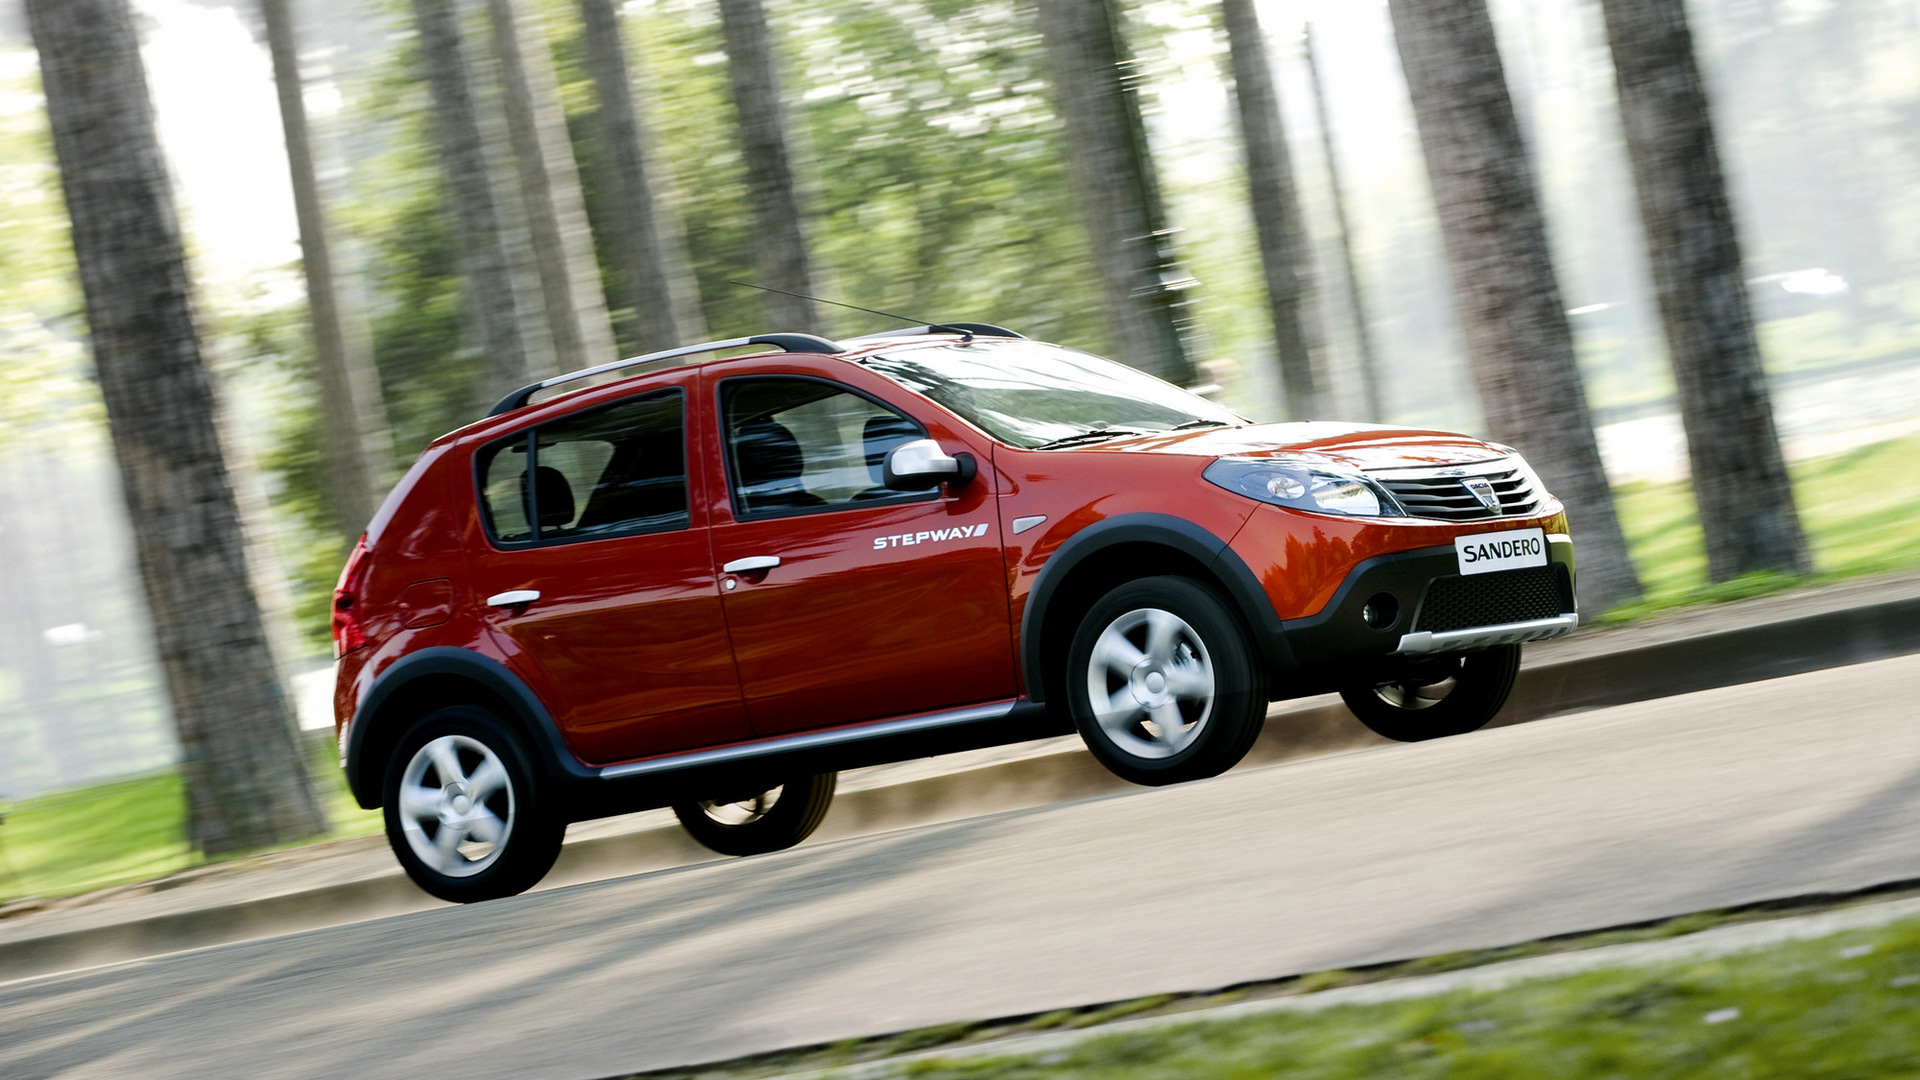 dacia sandero stepway 2009 wallpapers and hd images. Black Bedroom Furniture Sets. Home Design Ideas